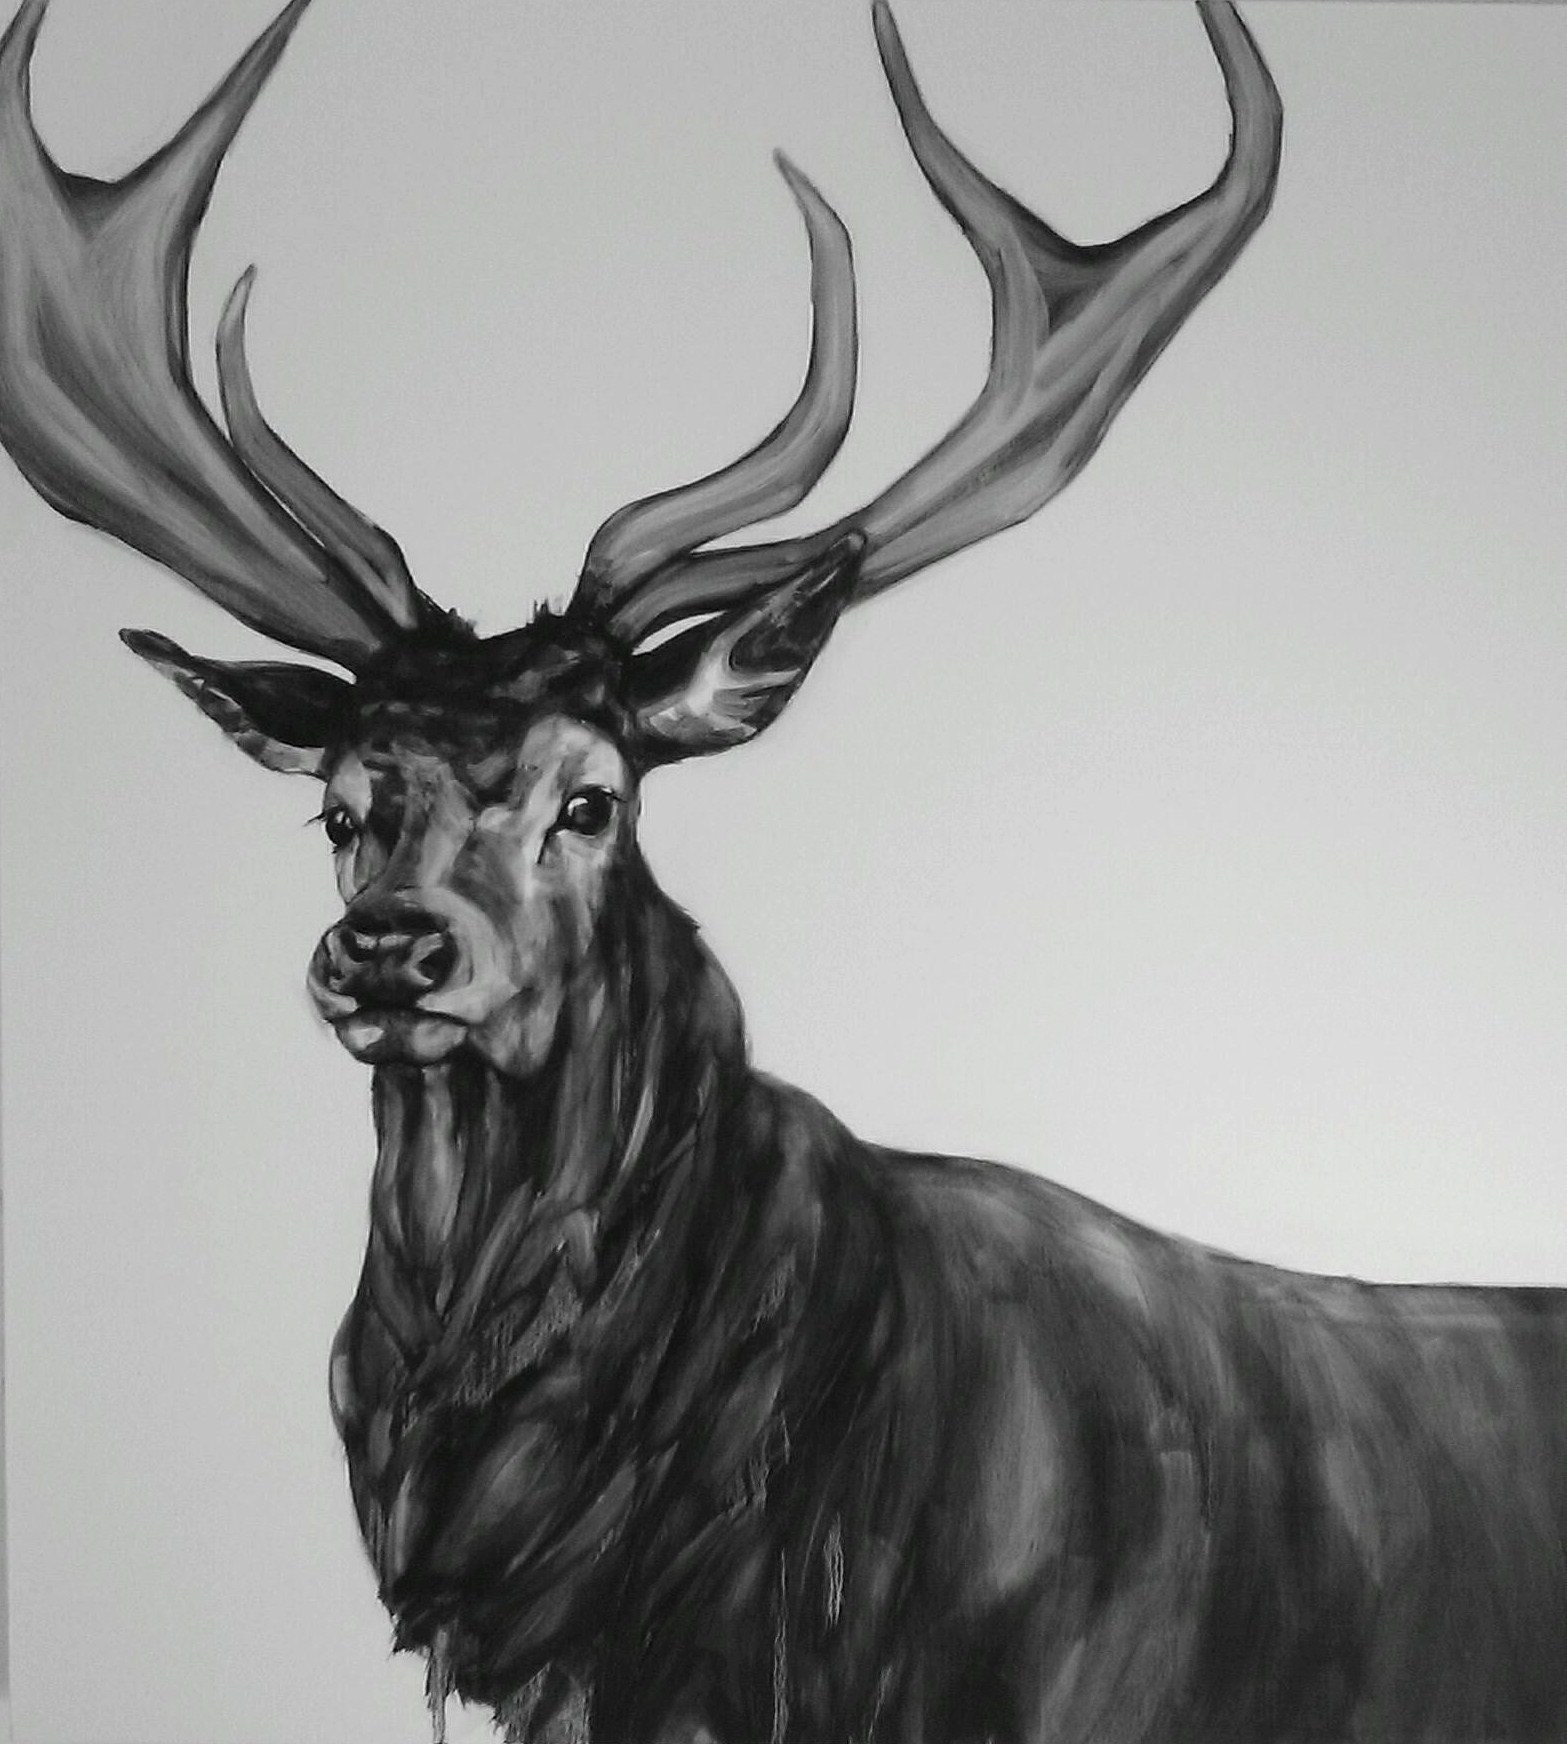 monochrome painting of a stag